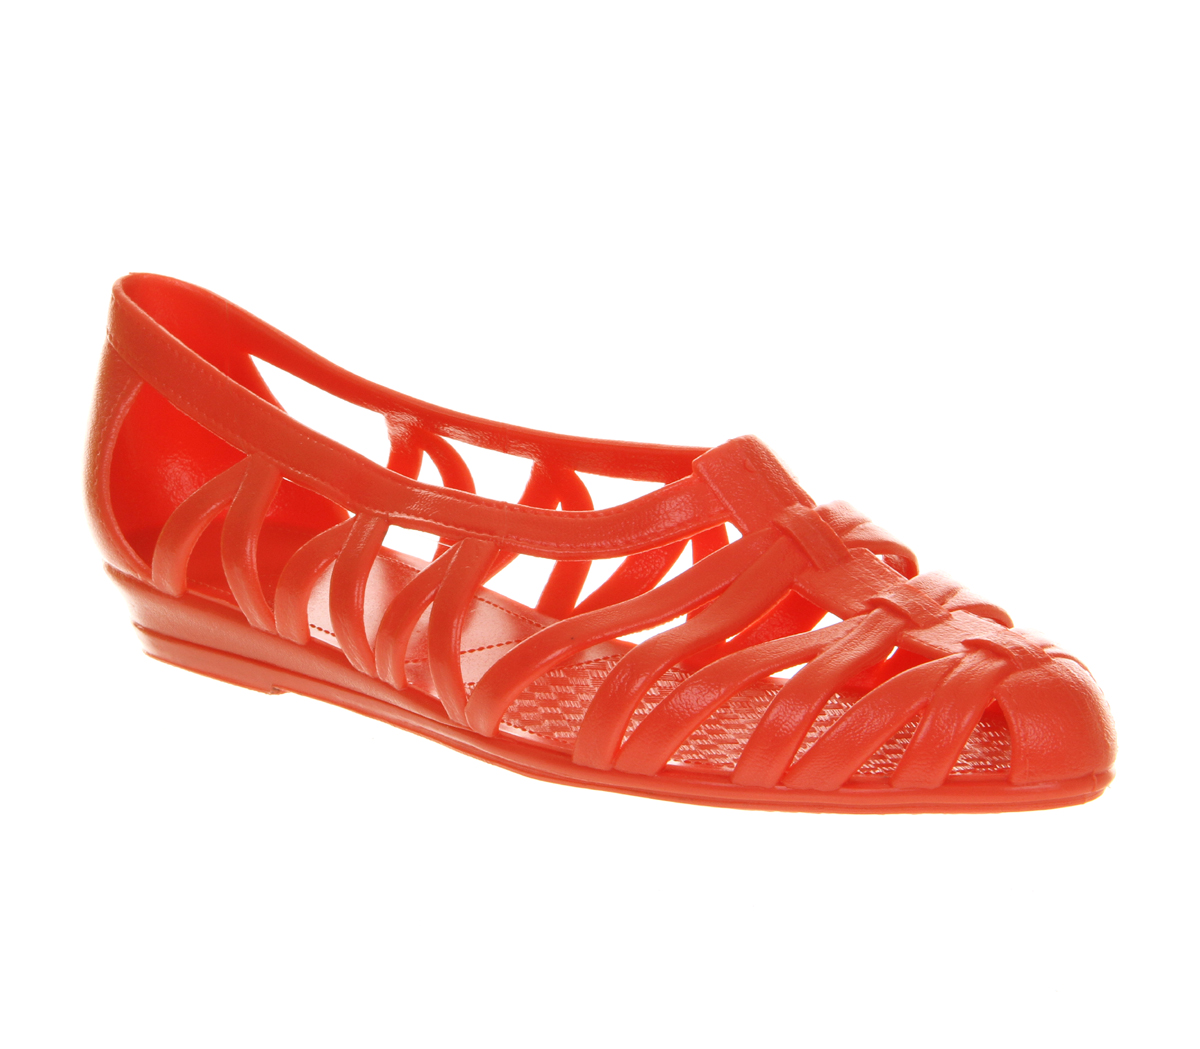 womens juju juju jelly coral sandals size 4 ebay